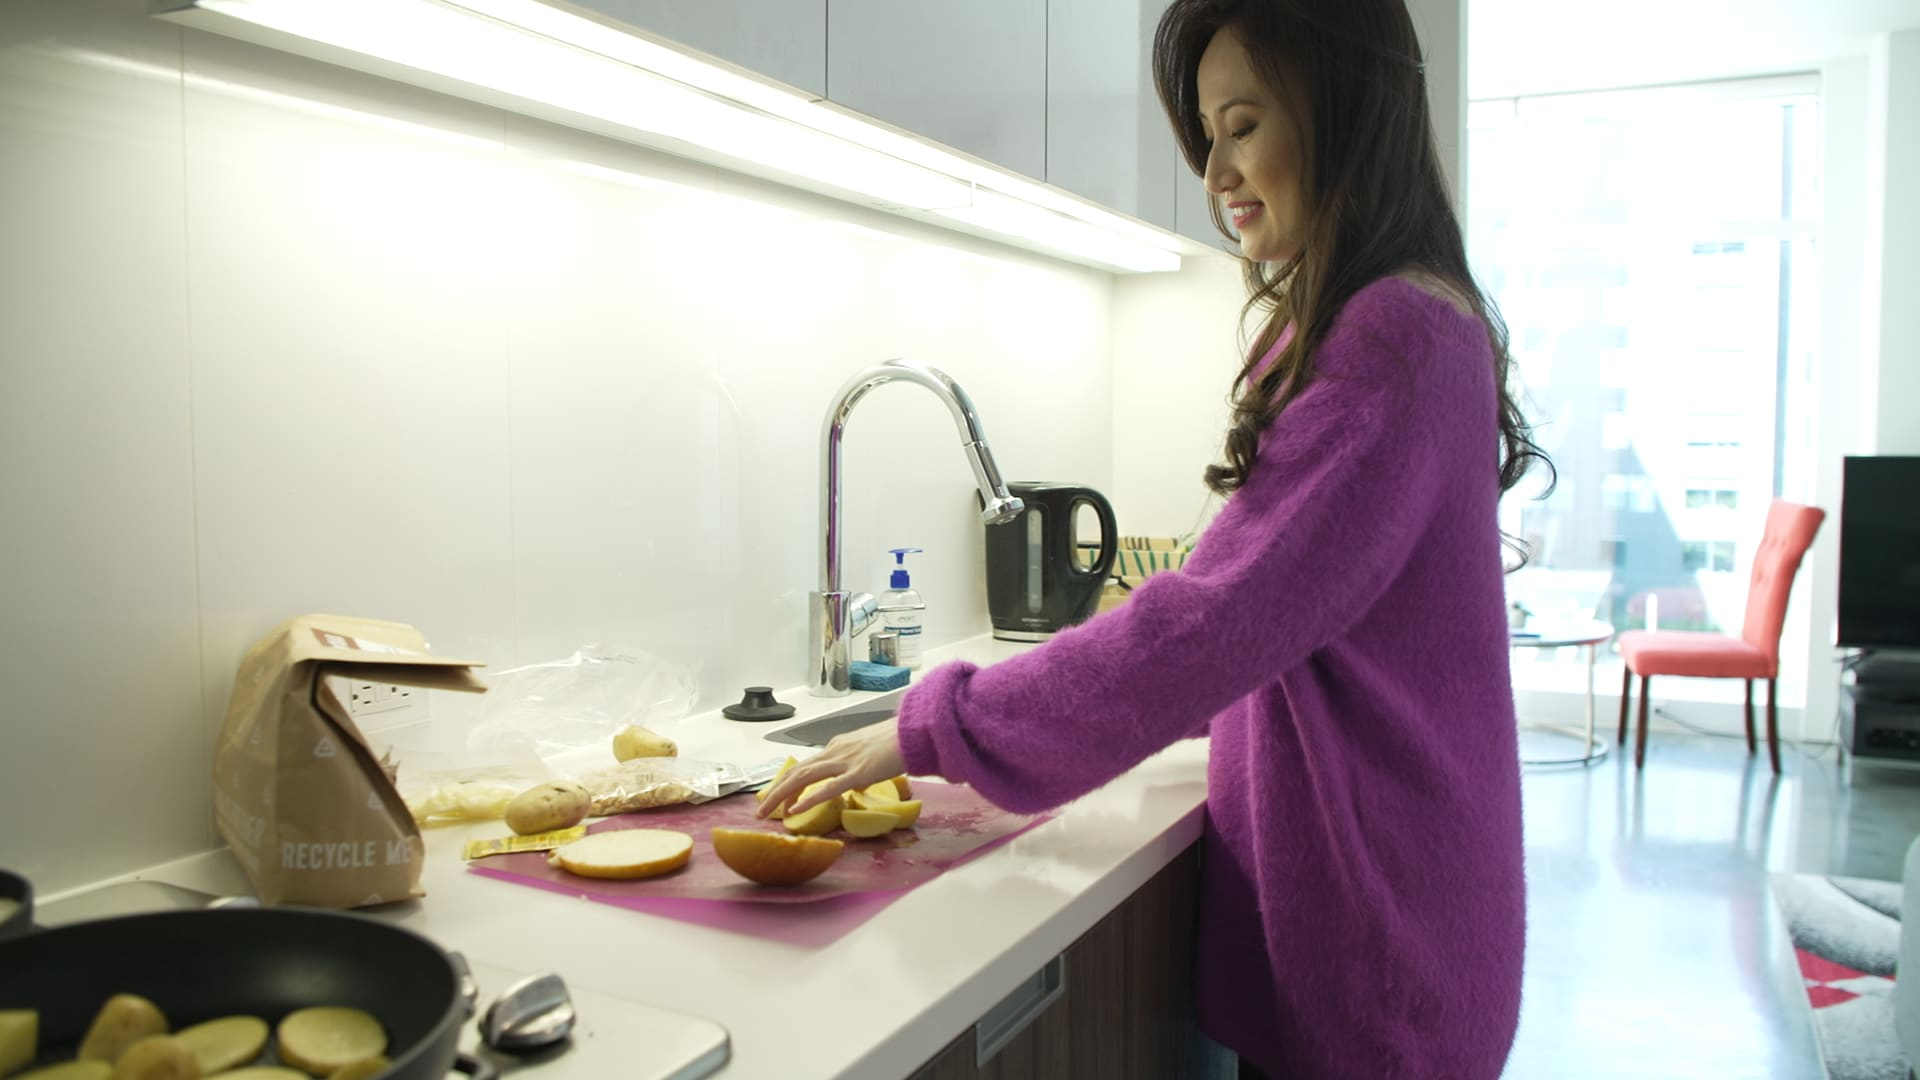 Shan Shan Fu cooks a meal in her apartment.